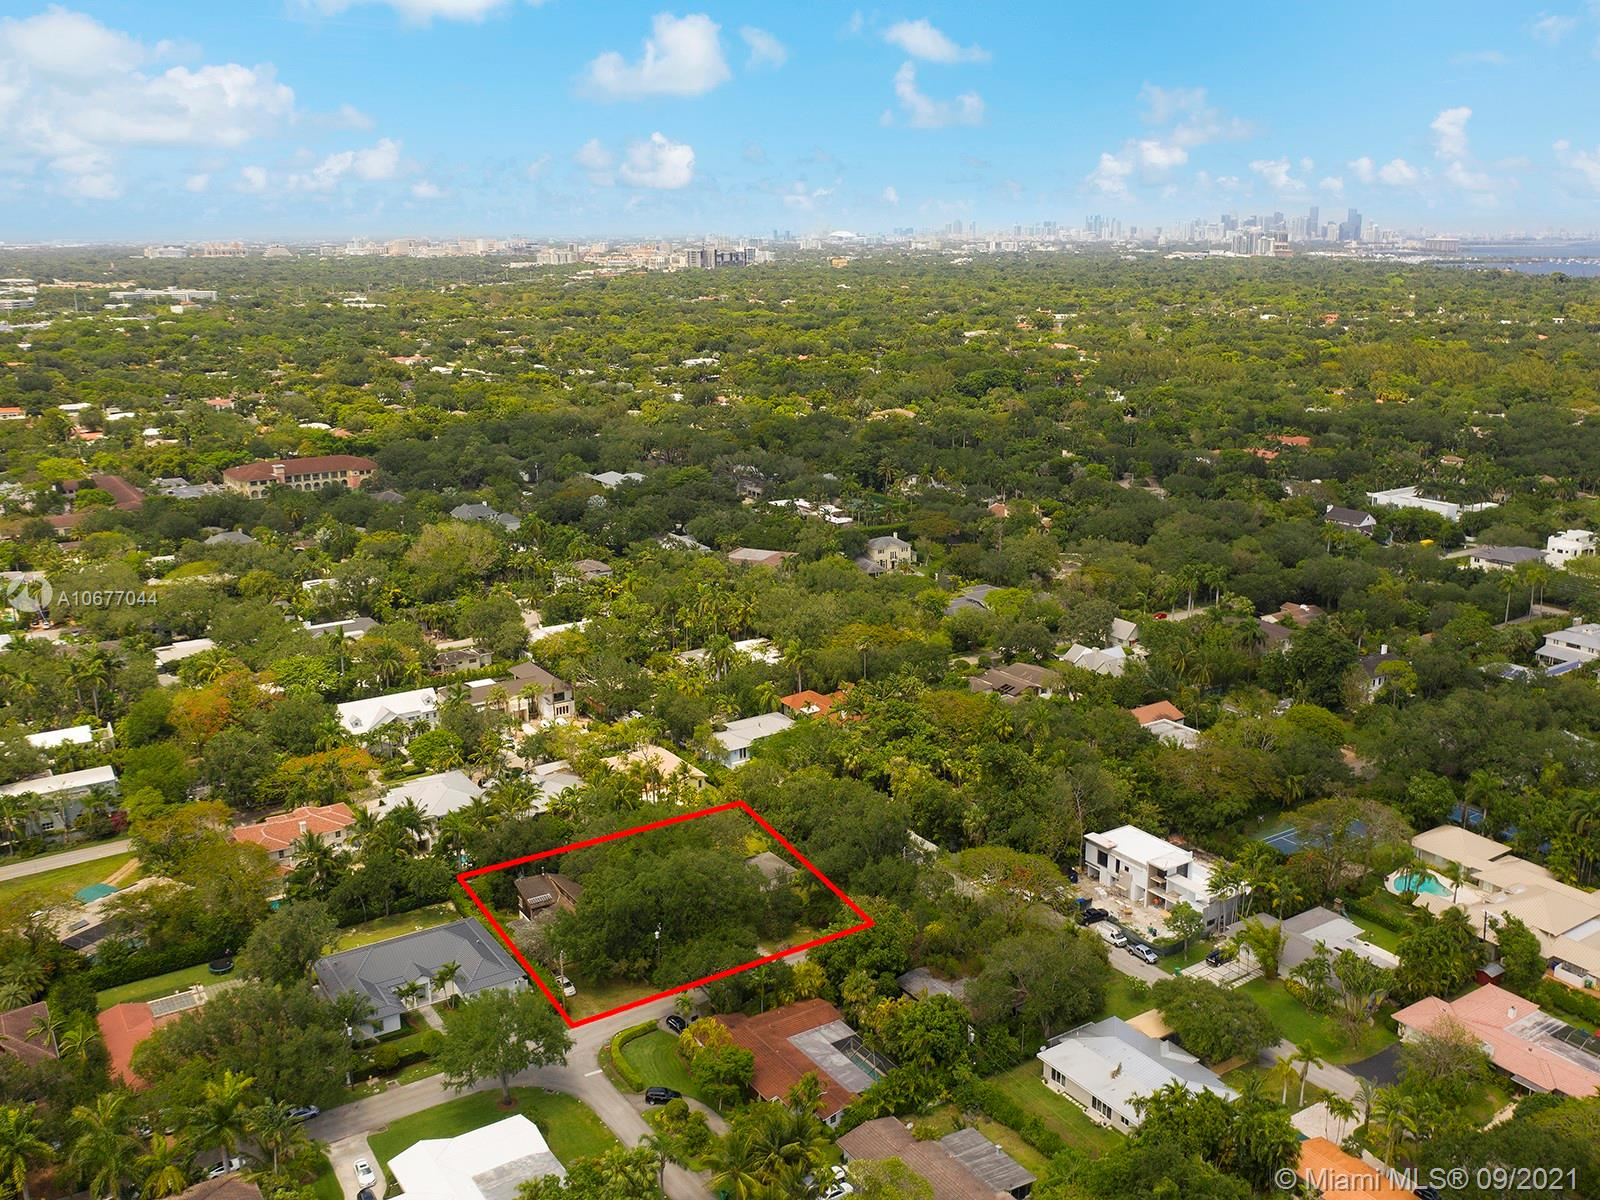 Prime for development, this nearly 6,000 sqft lot in South Miami is situated on a quite, tree lined street, in one of Miami's most prestigious neighborhoods. Just minutes from all of South Miami's, Coral Gables', and Coconut Grove's restaurants and shops, it is also located near some of the area's best schools including: Sunset Elementary, Gulliver Schools, Temple Beth Am, Epiphany, St Thomas Episcopal, and others.